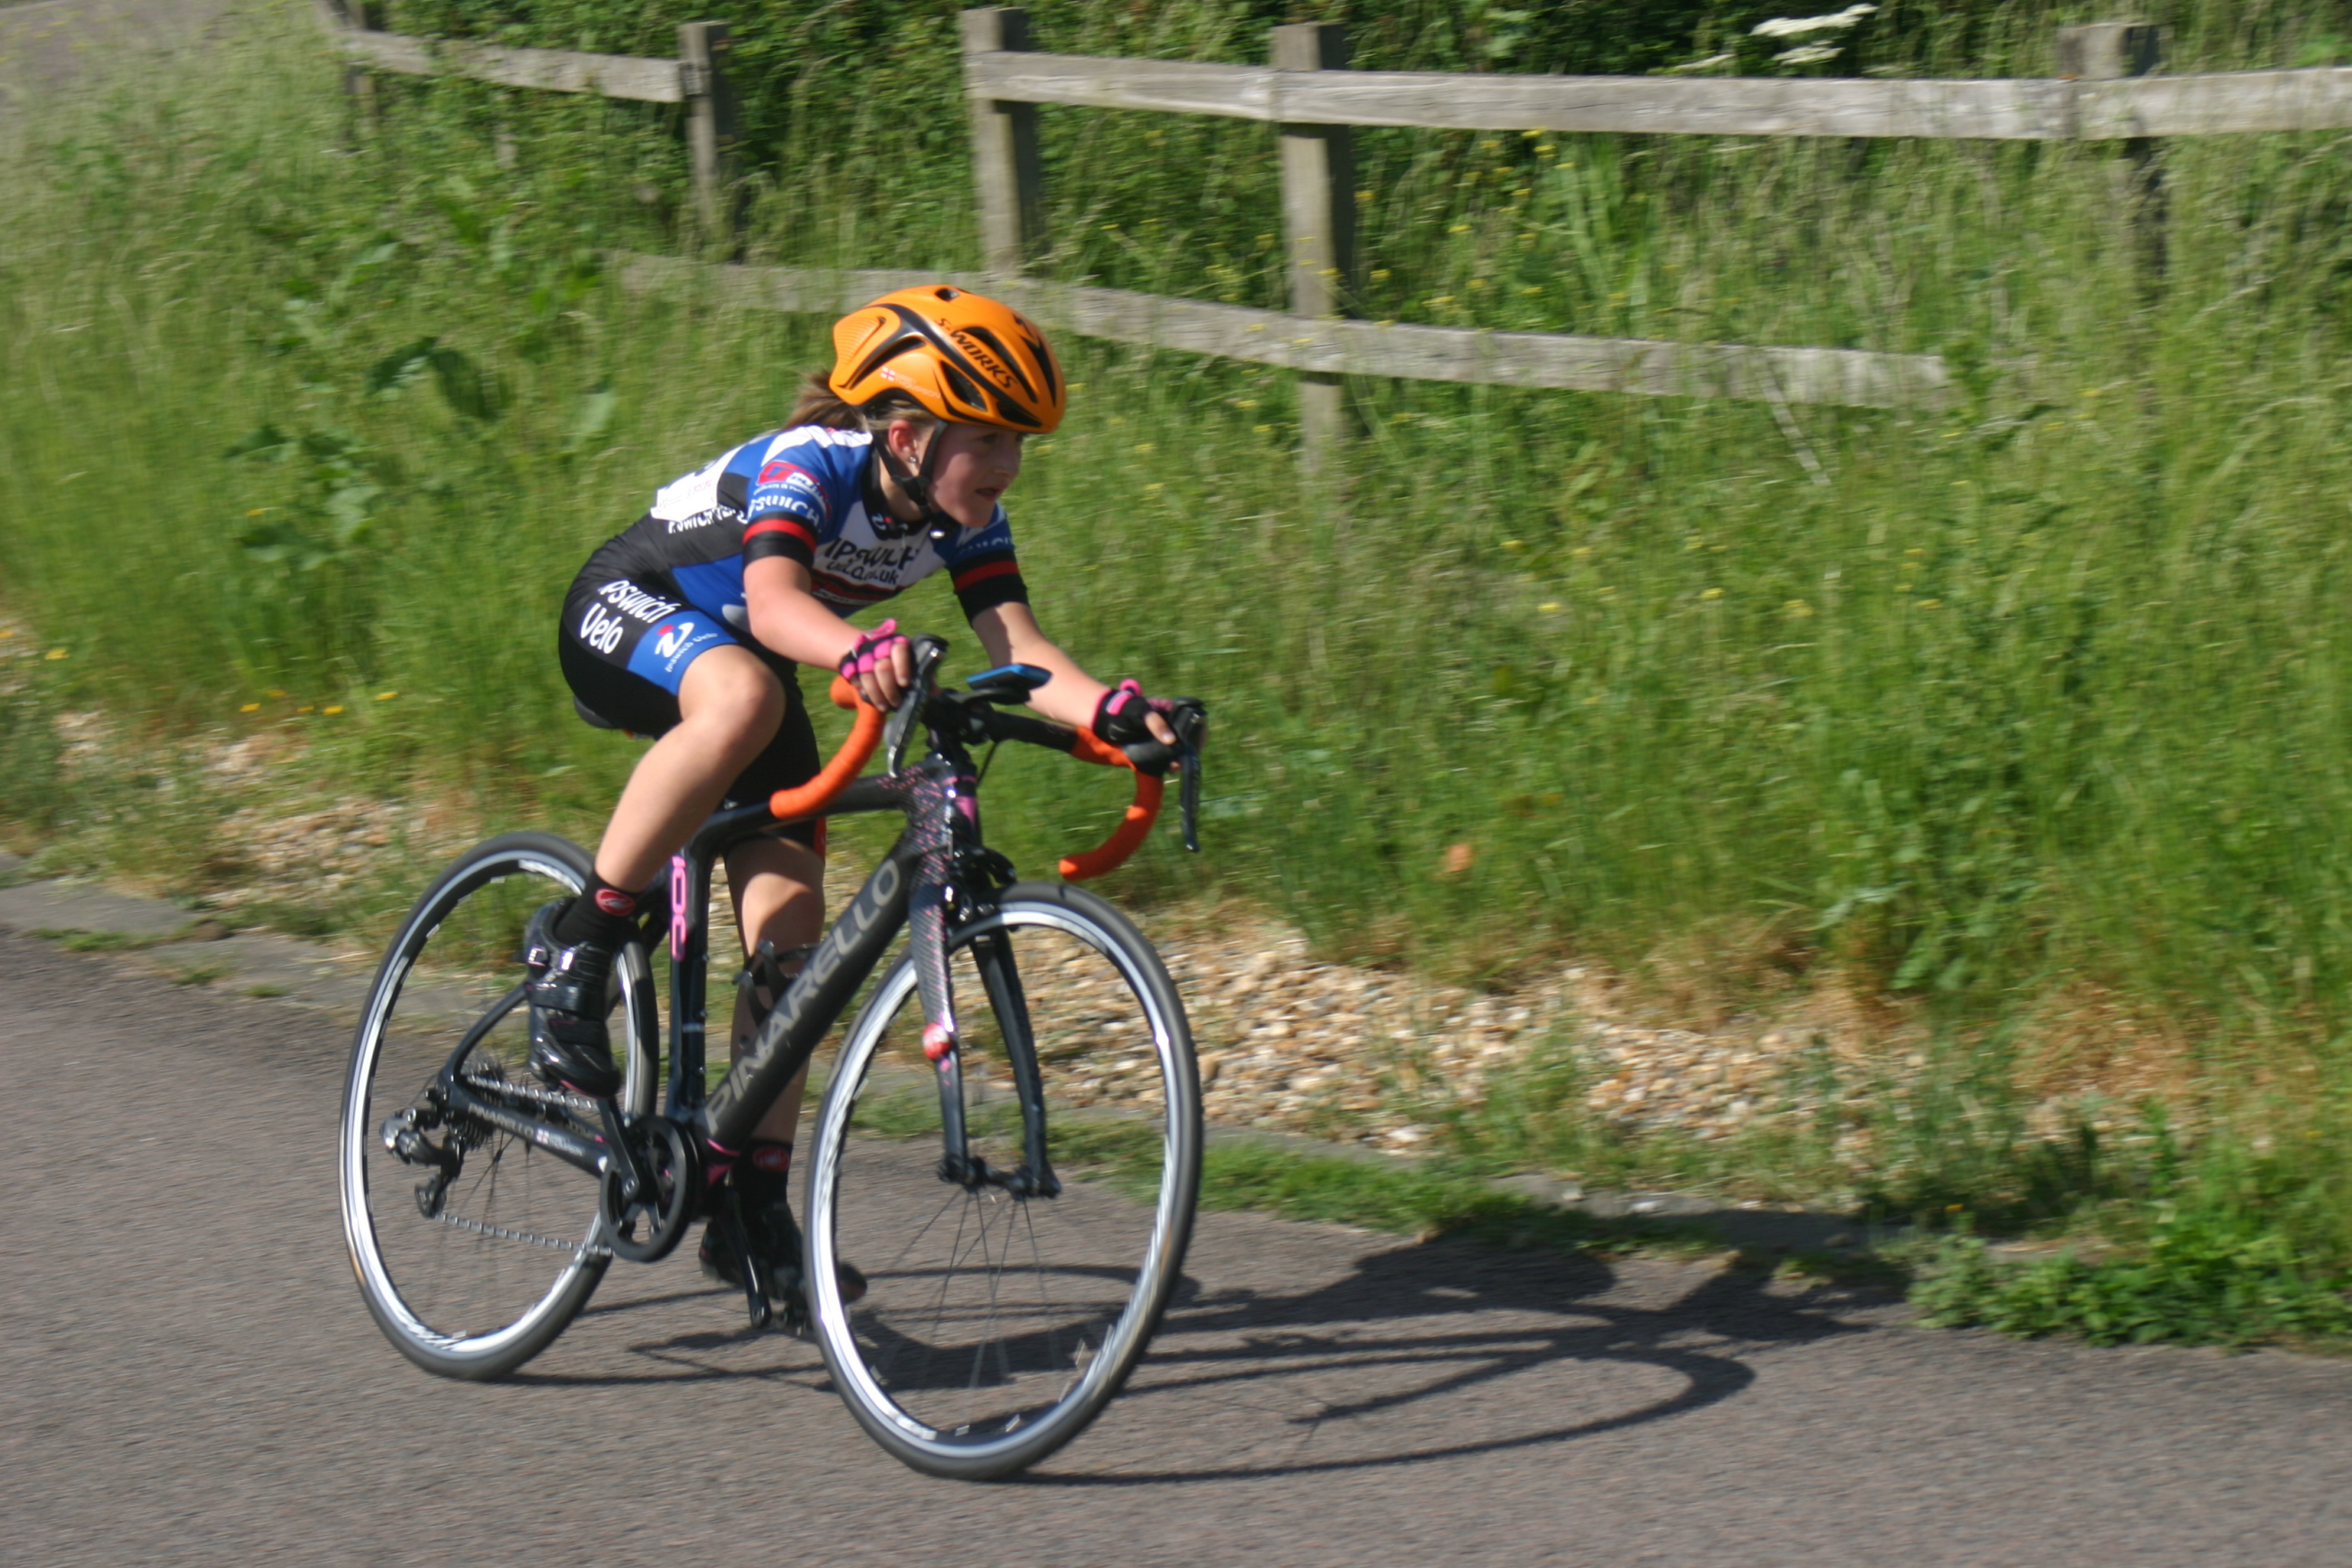 Abbey coming 3rd to 10yr olds in the Hillingdon NYS race in 2018